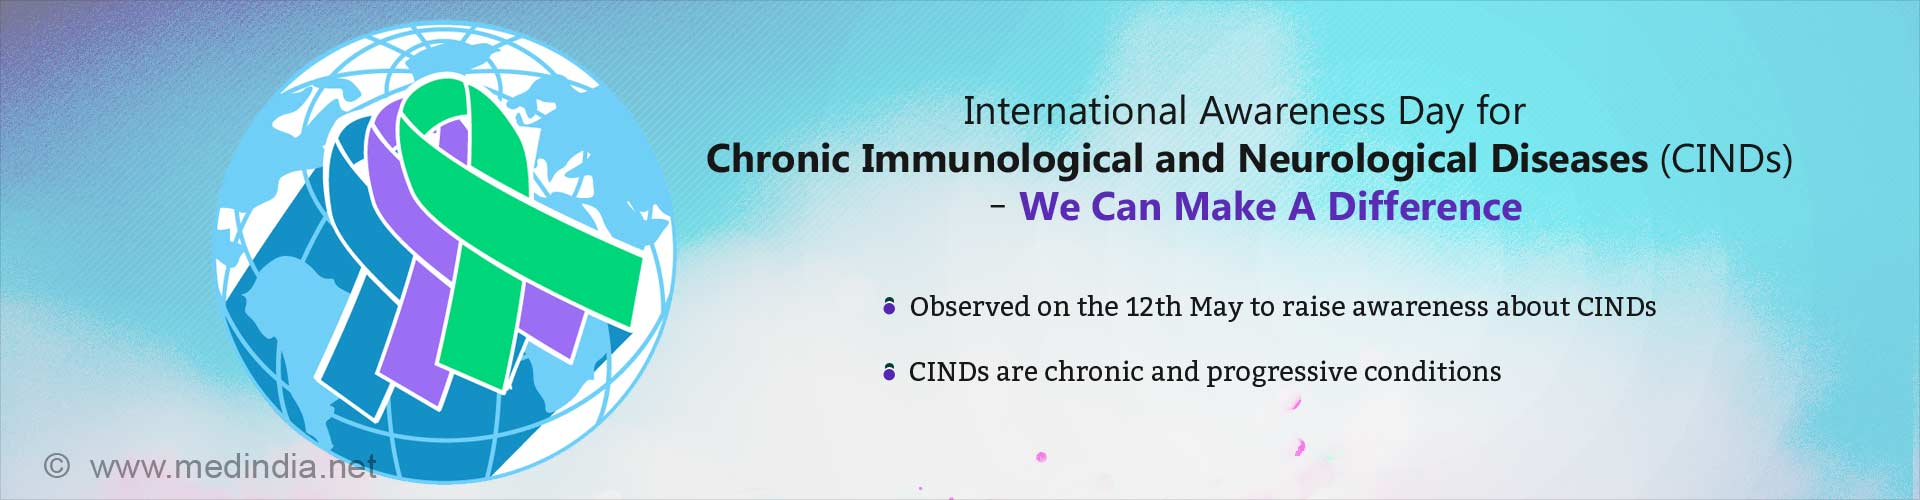 Raising Awareness of Chronic Immunological and Neurological Diseases (CINDs)